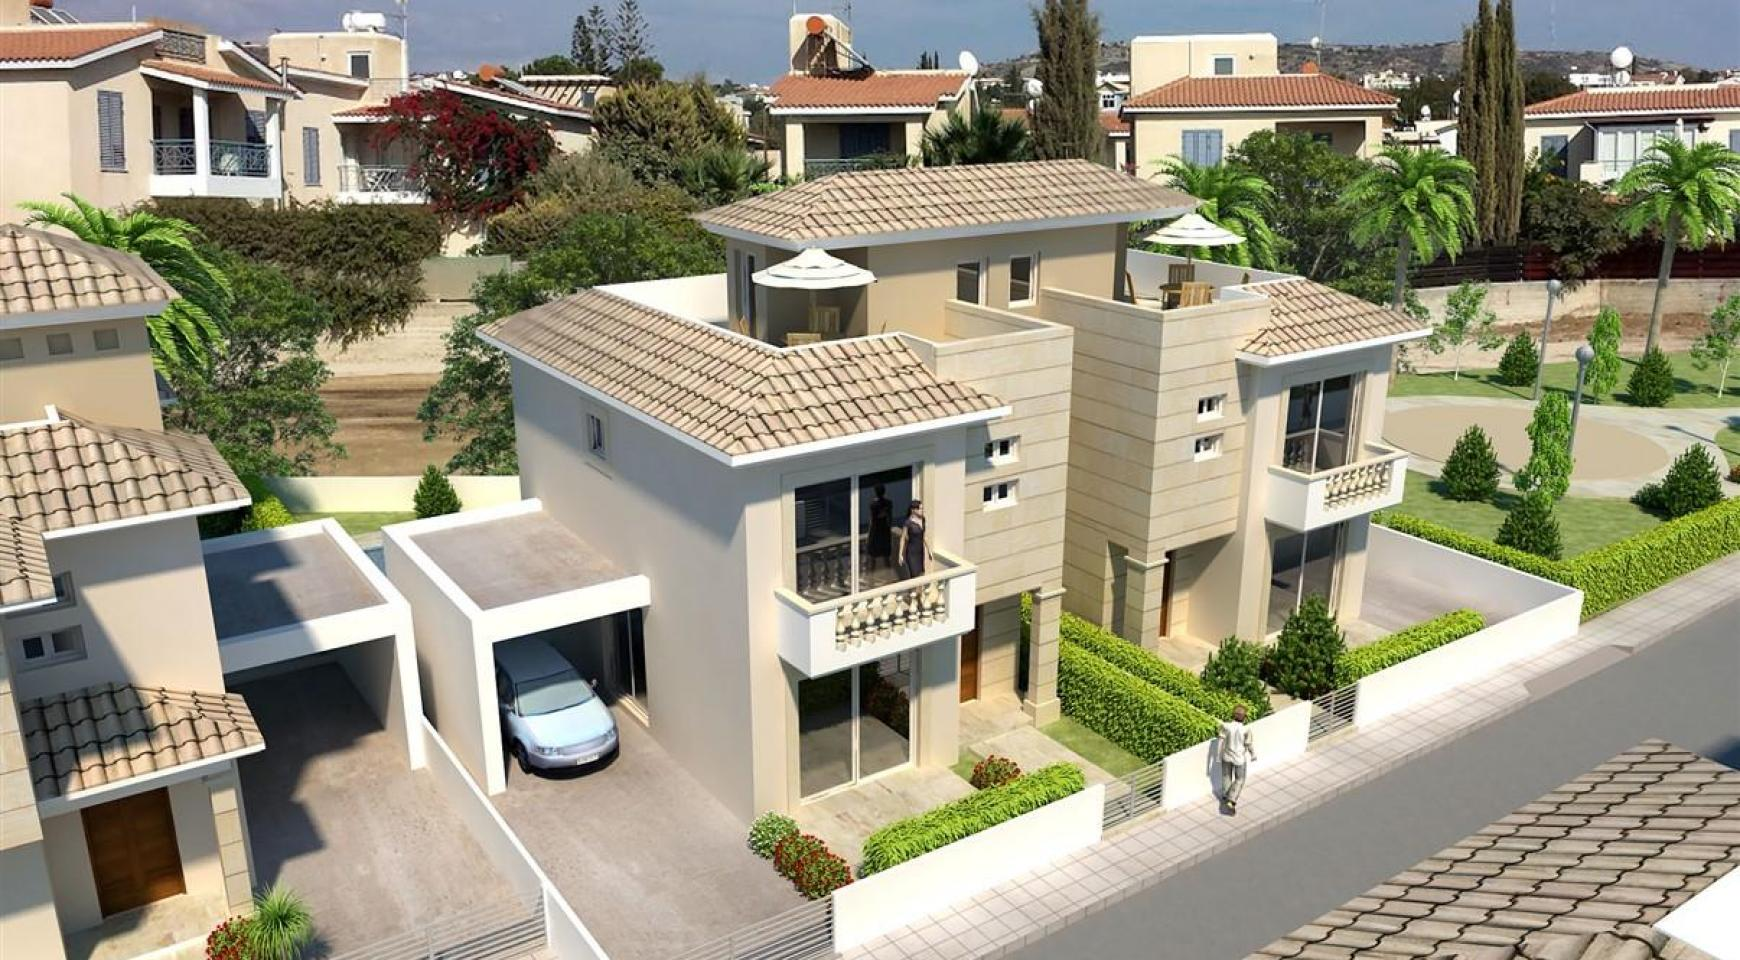 3 Bedroom Villa in New Project in Paphos - 25